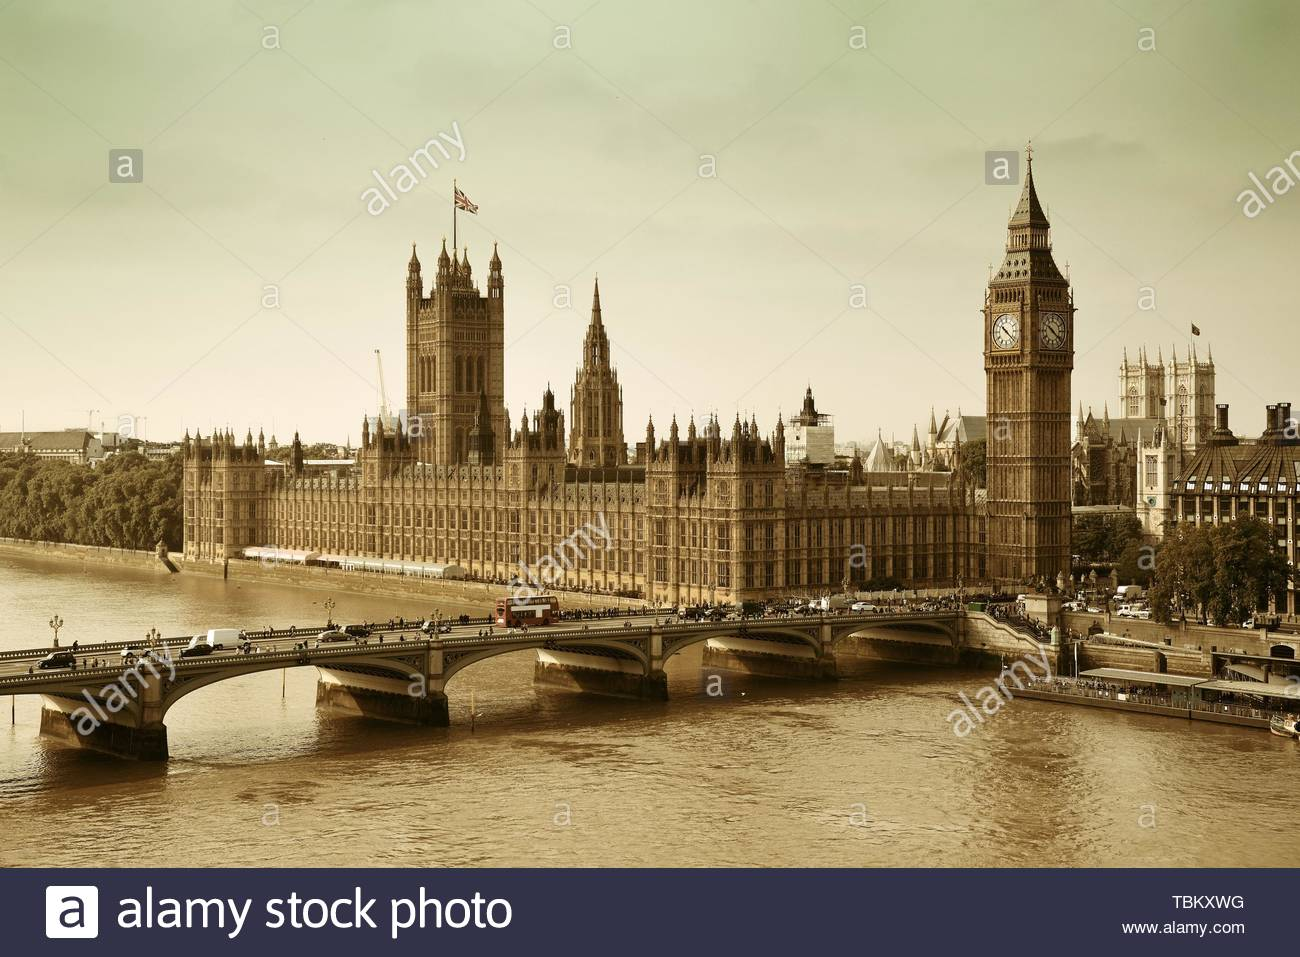 London Westminster with Big Ben and bridge. - Stock Image